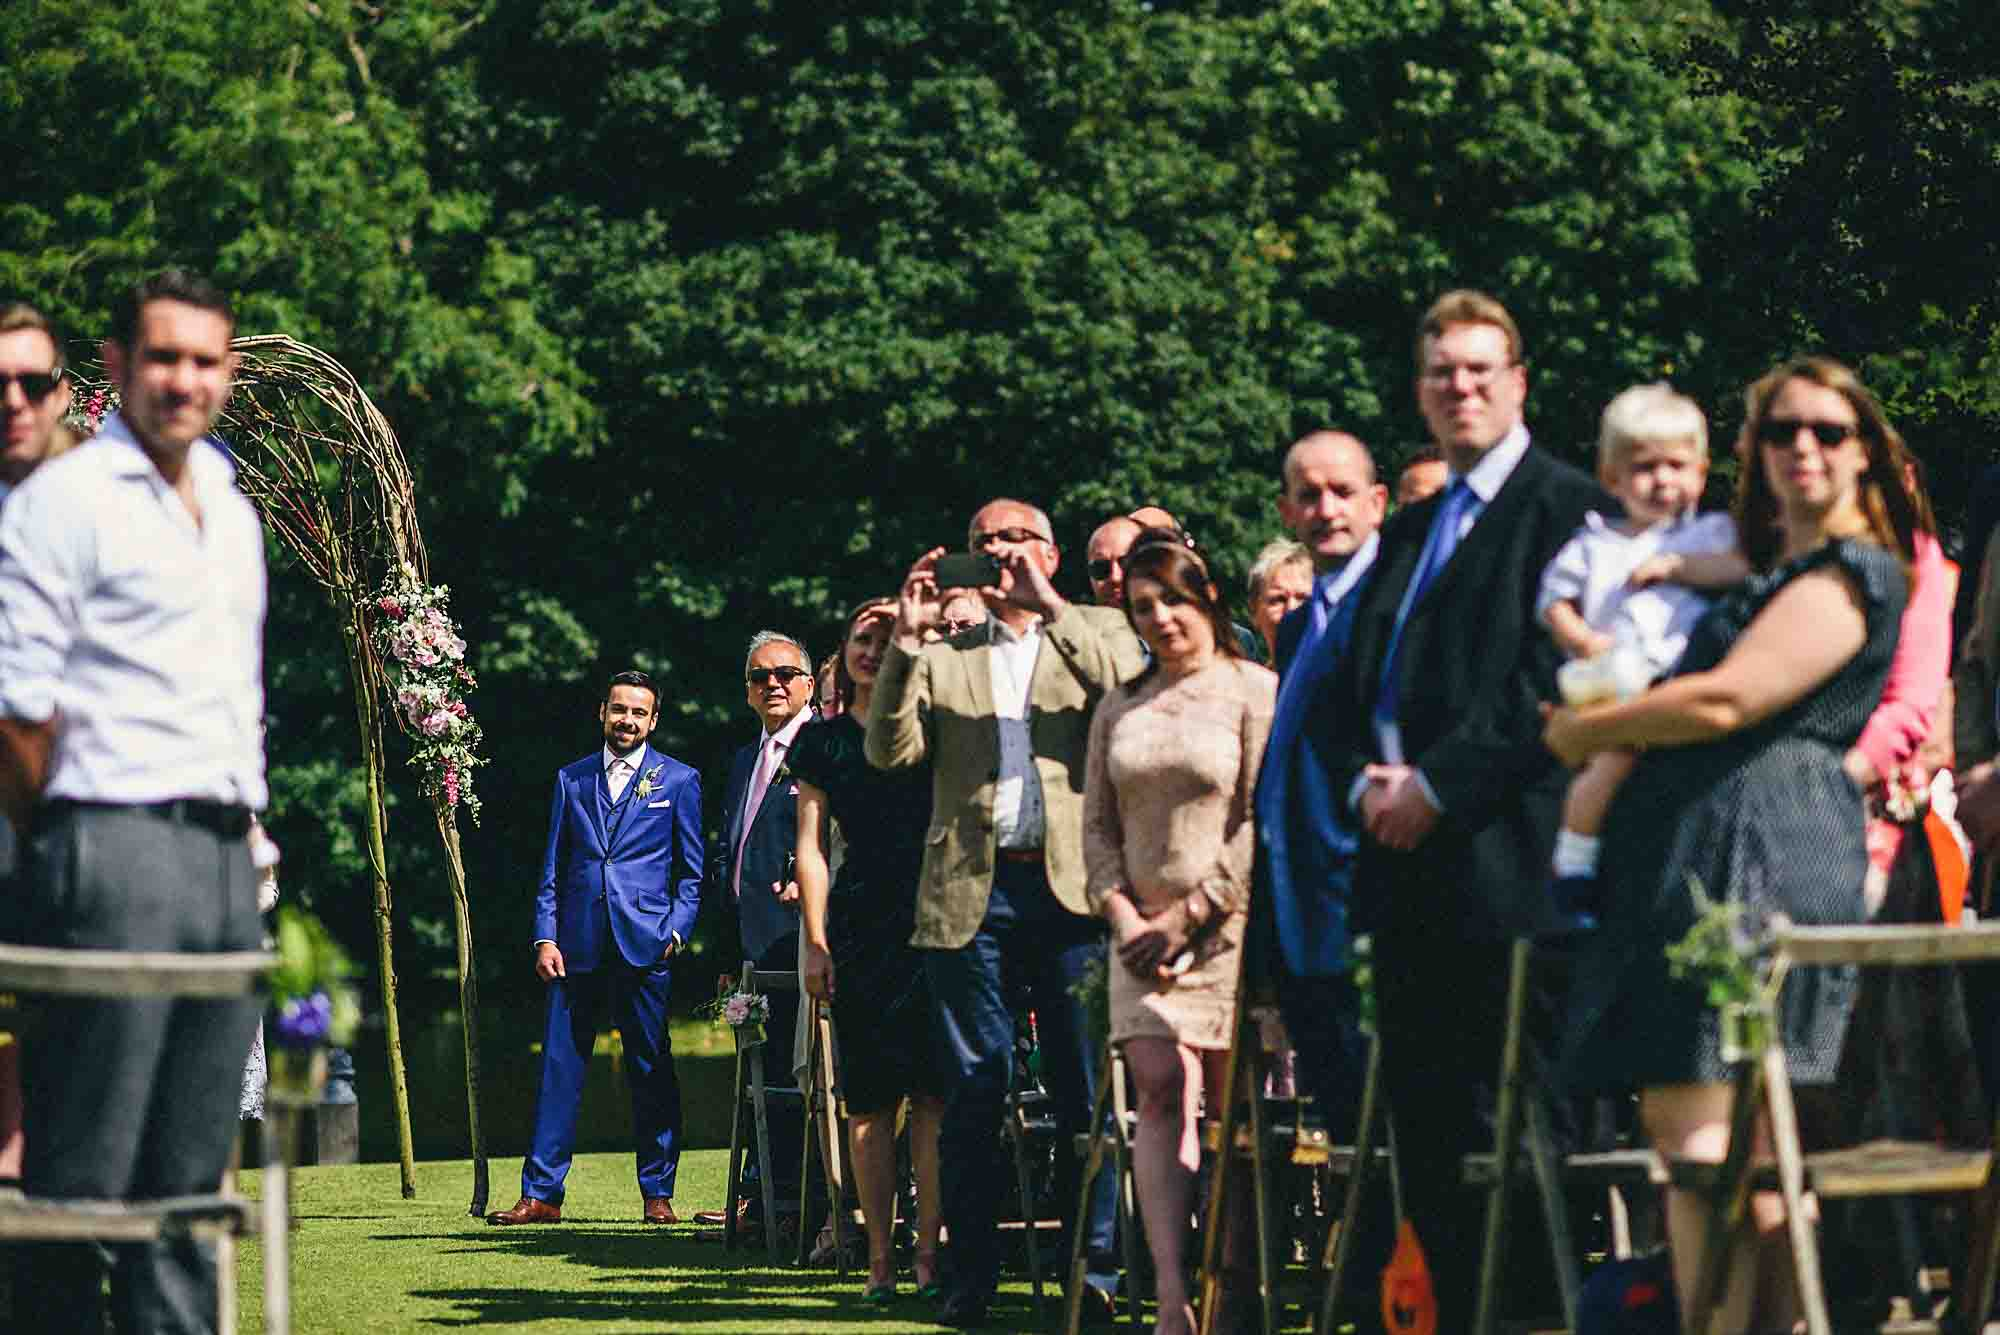 Narborough Hall Gardens wedding photography 18 Completed